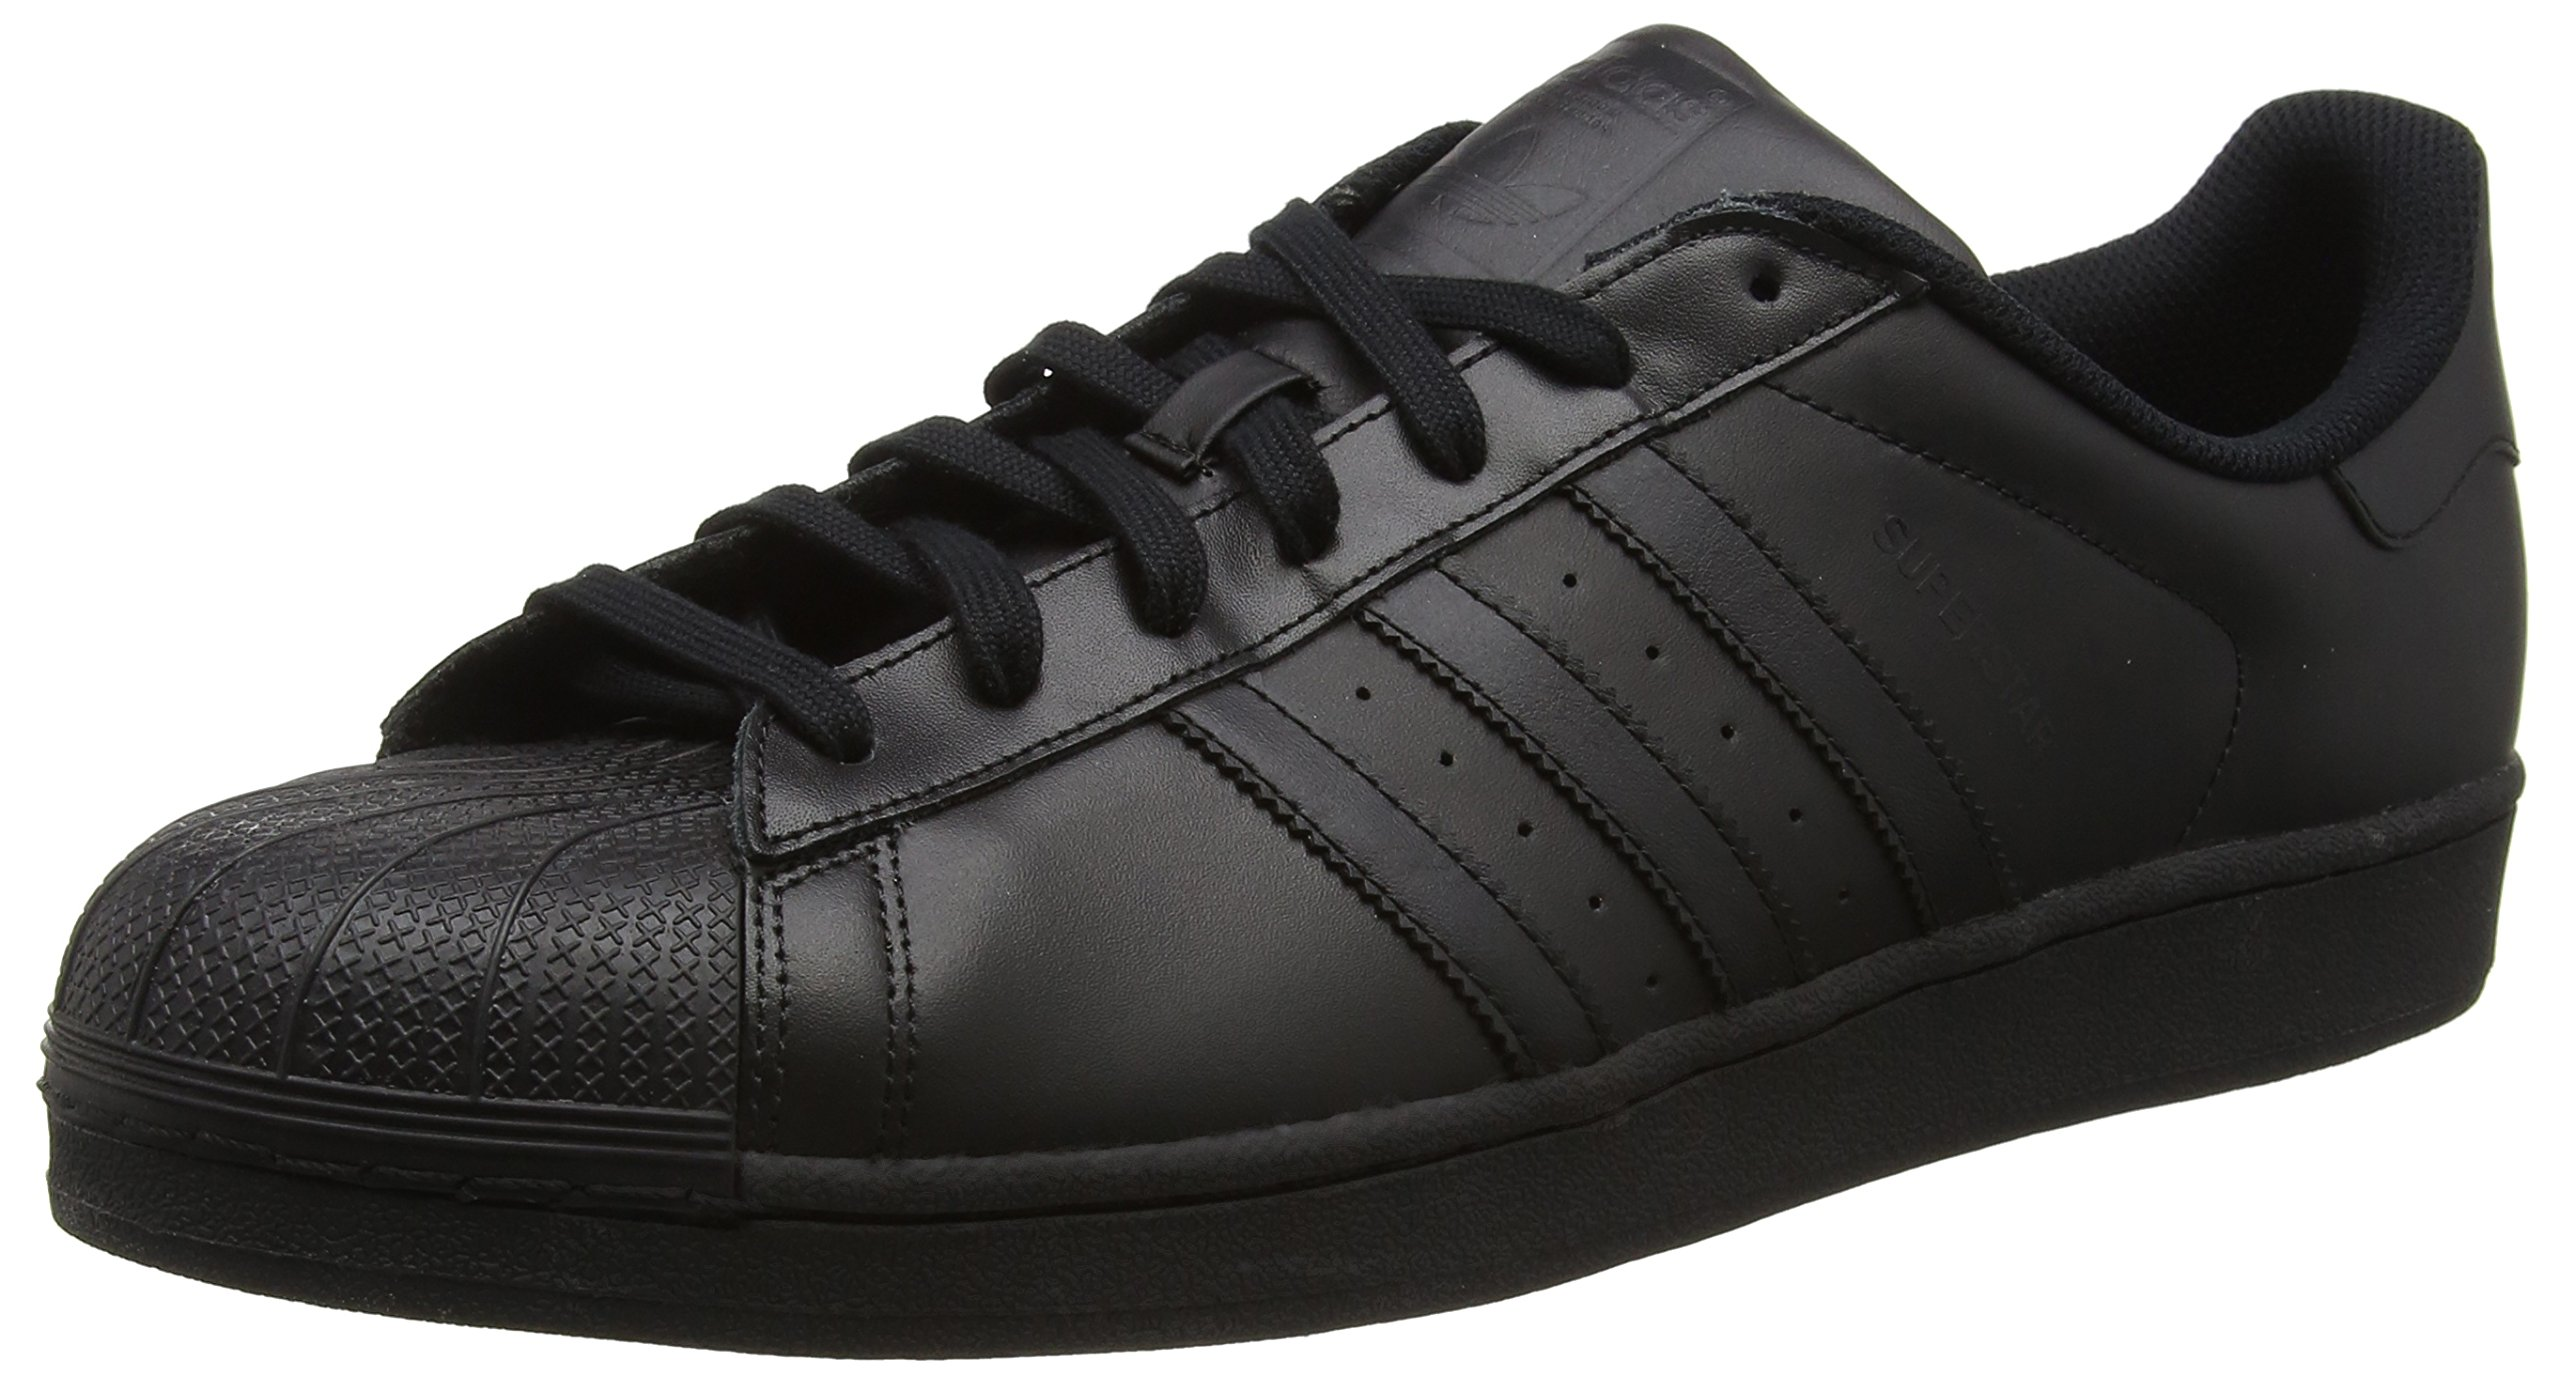 Adidas Originals Superstar Foundation Scarpe da Ginnastica Unisex - Adulto 1 spesavip